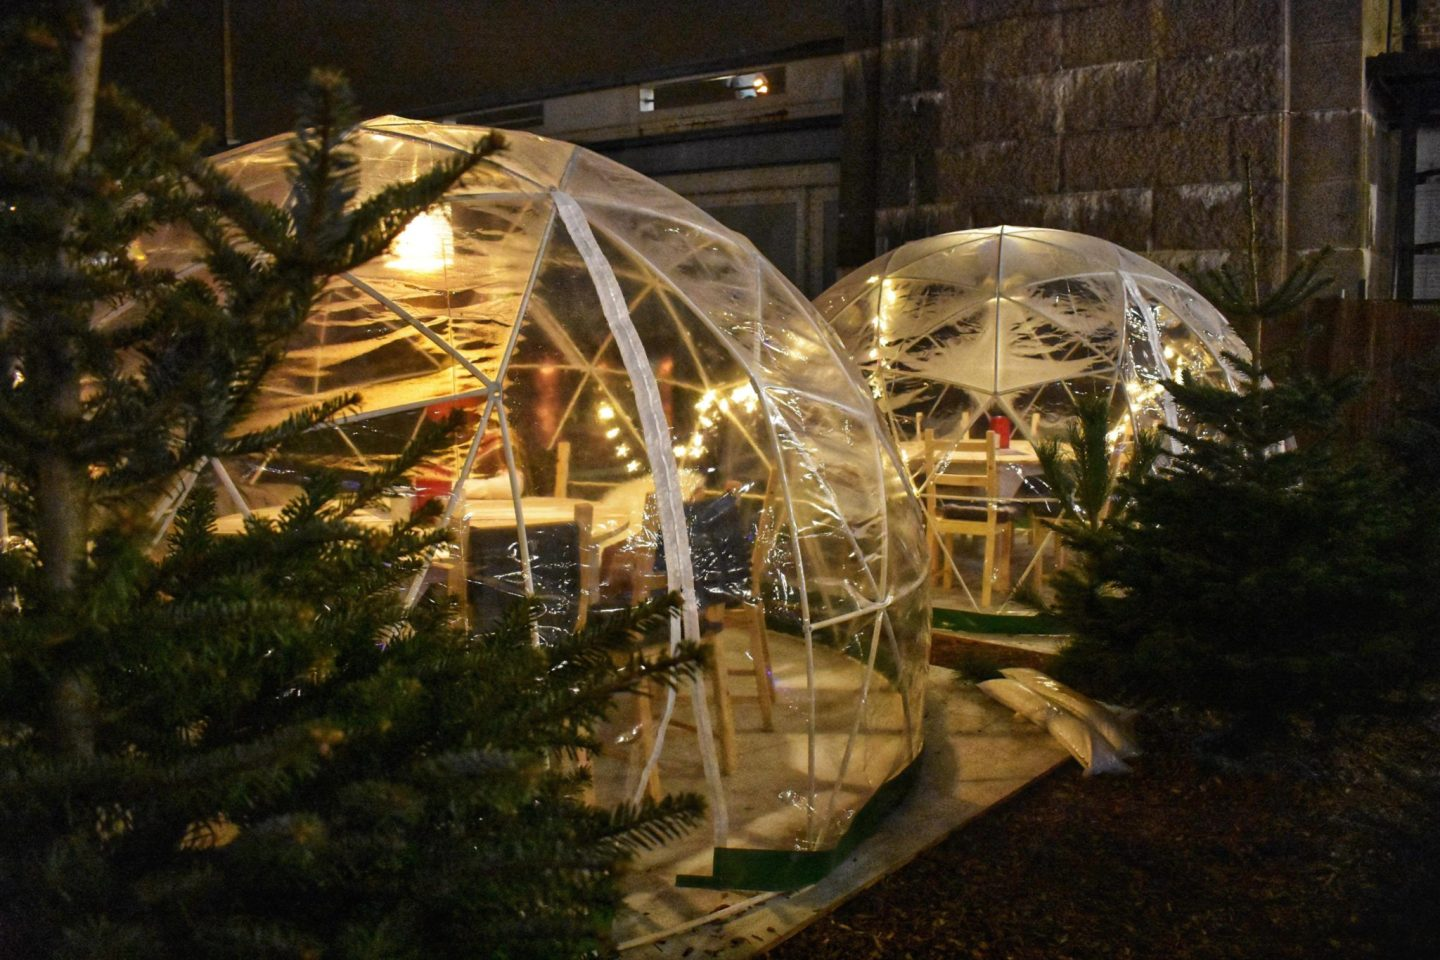 Igloos at Winterland Fulham London